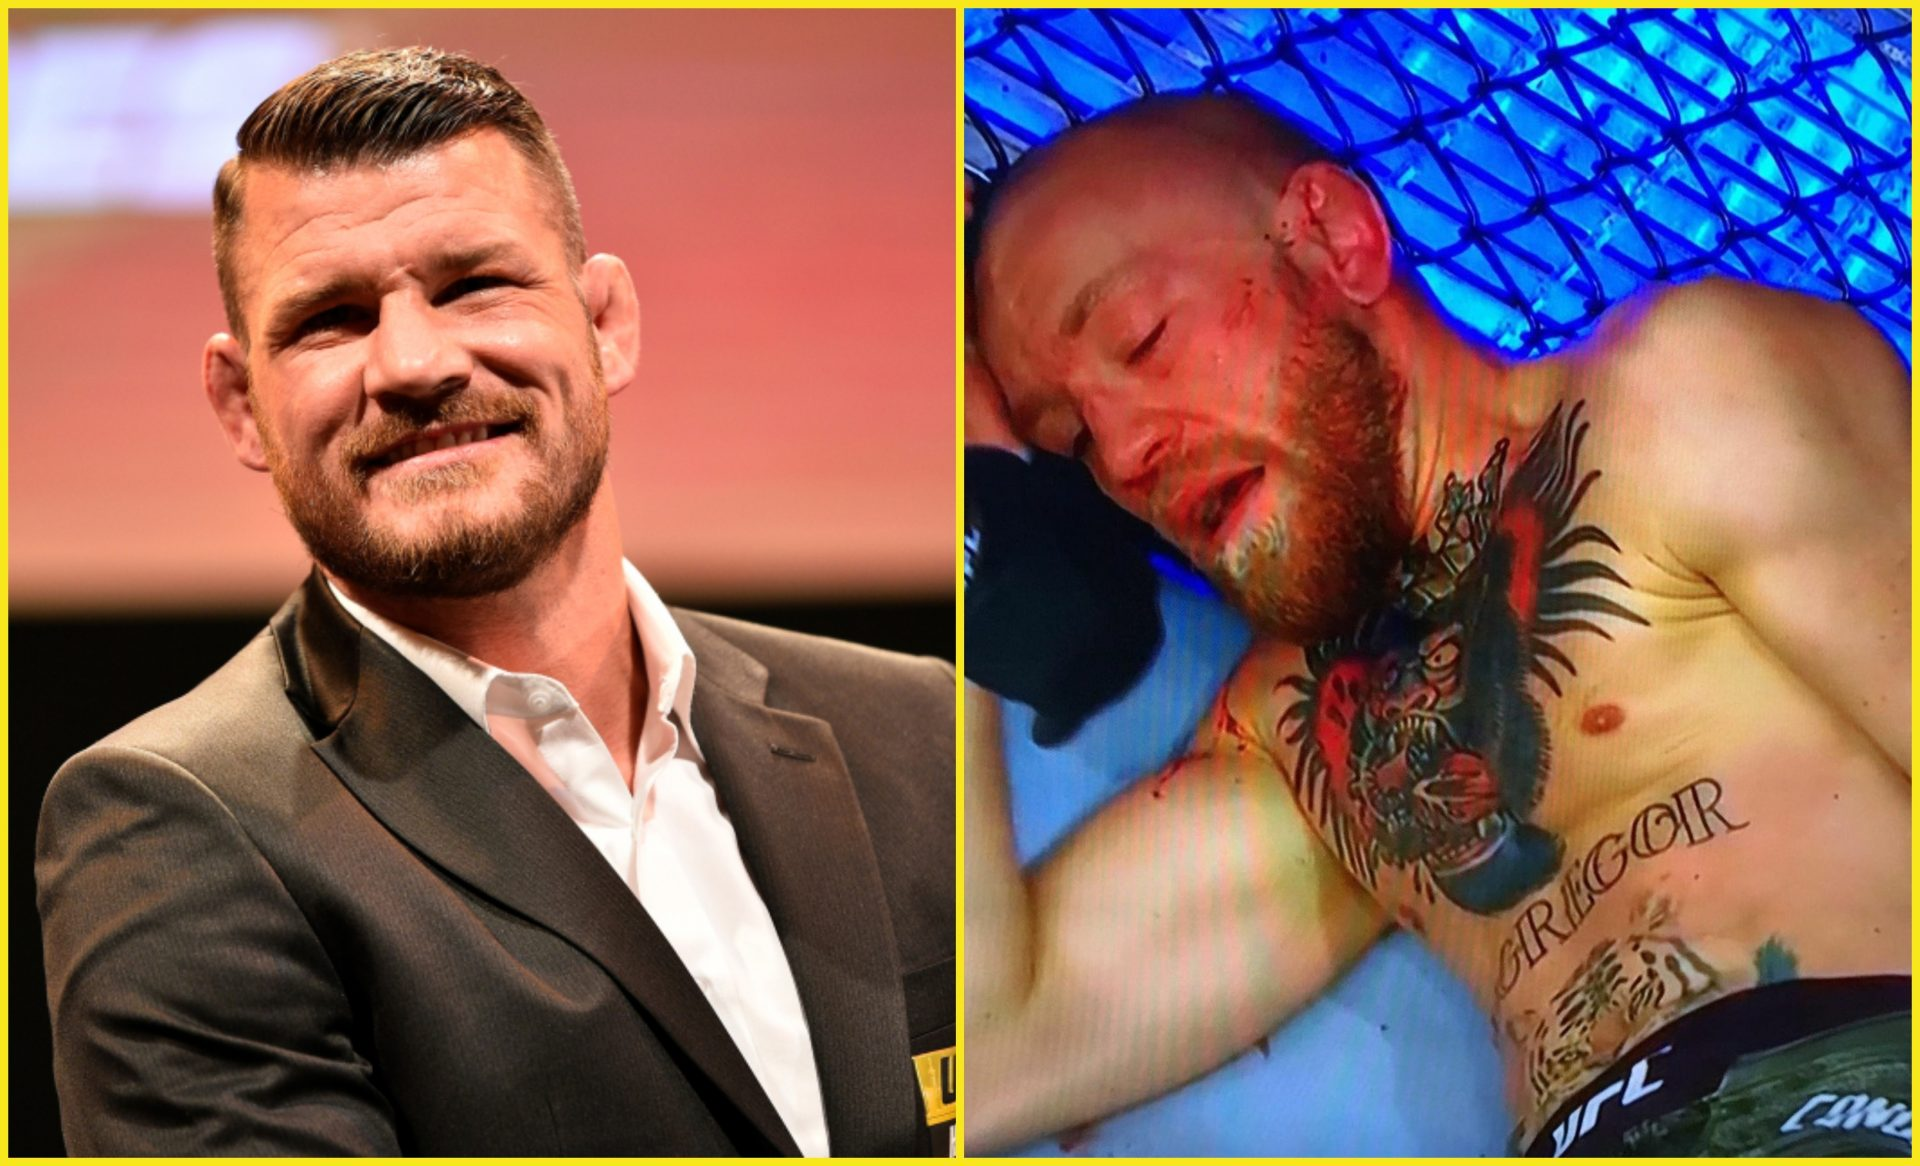 Michael Bisping doesn't think inactivity was the reason behind Conor McGregor's loss at UFC 257 - Michael Bisping